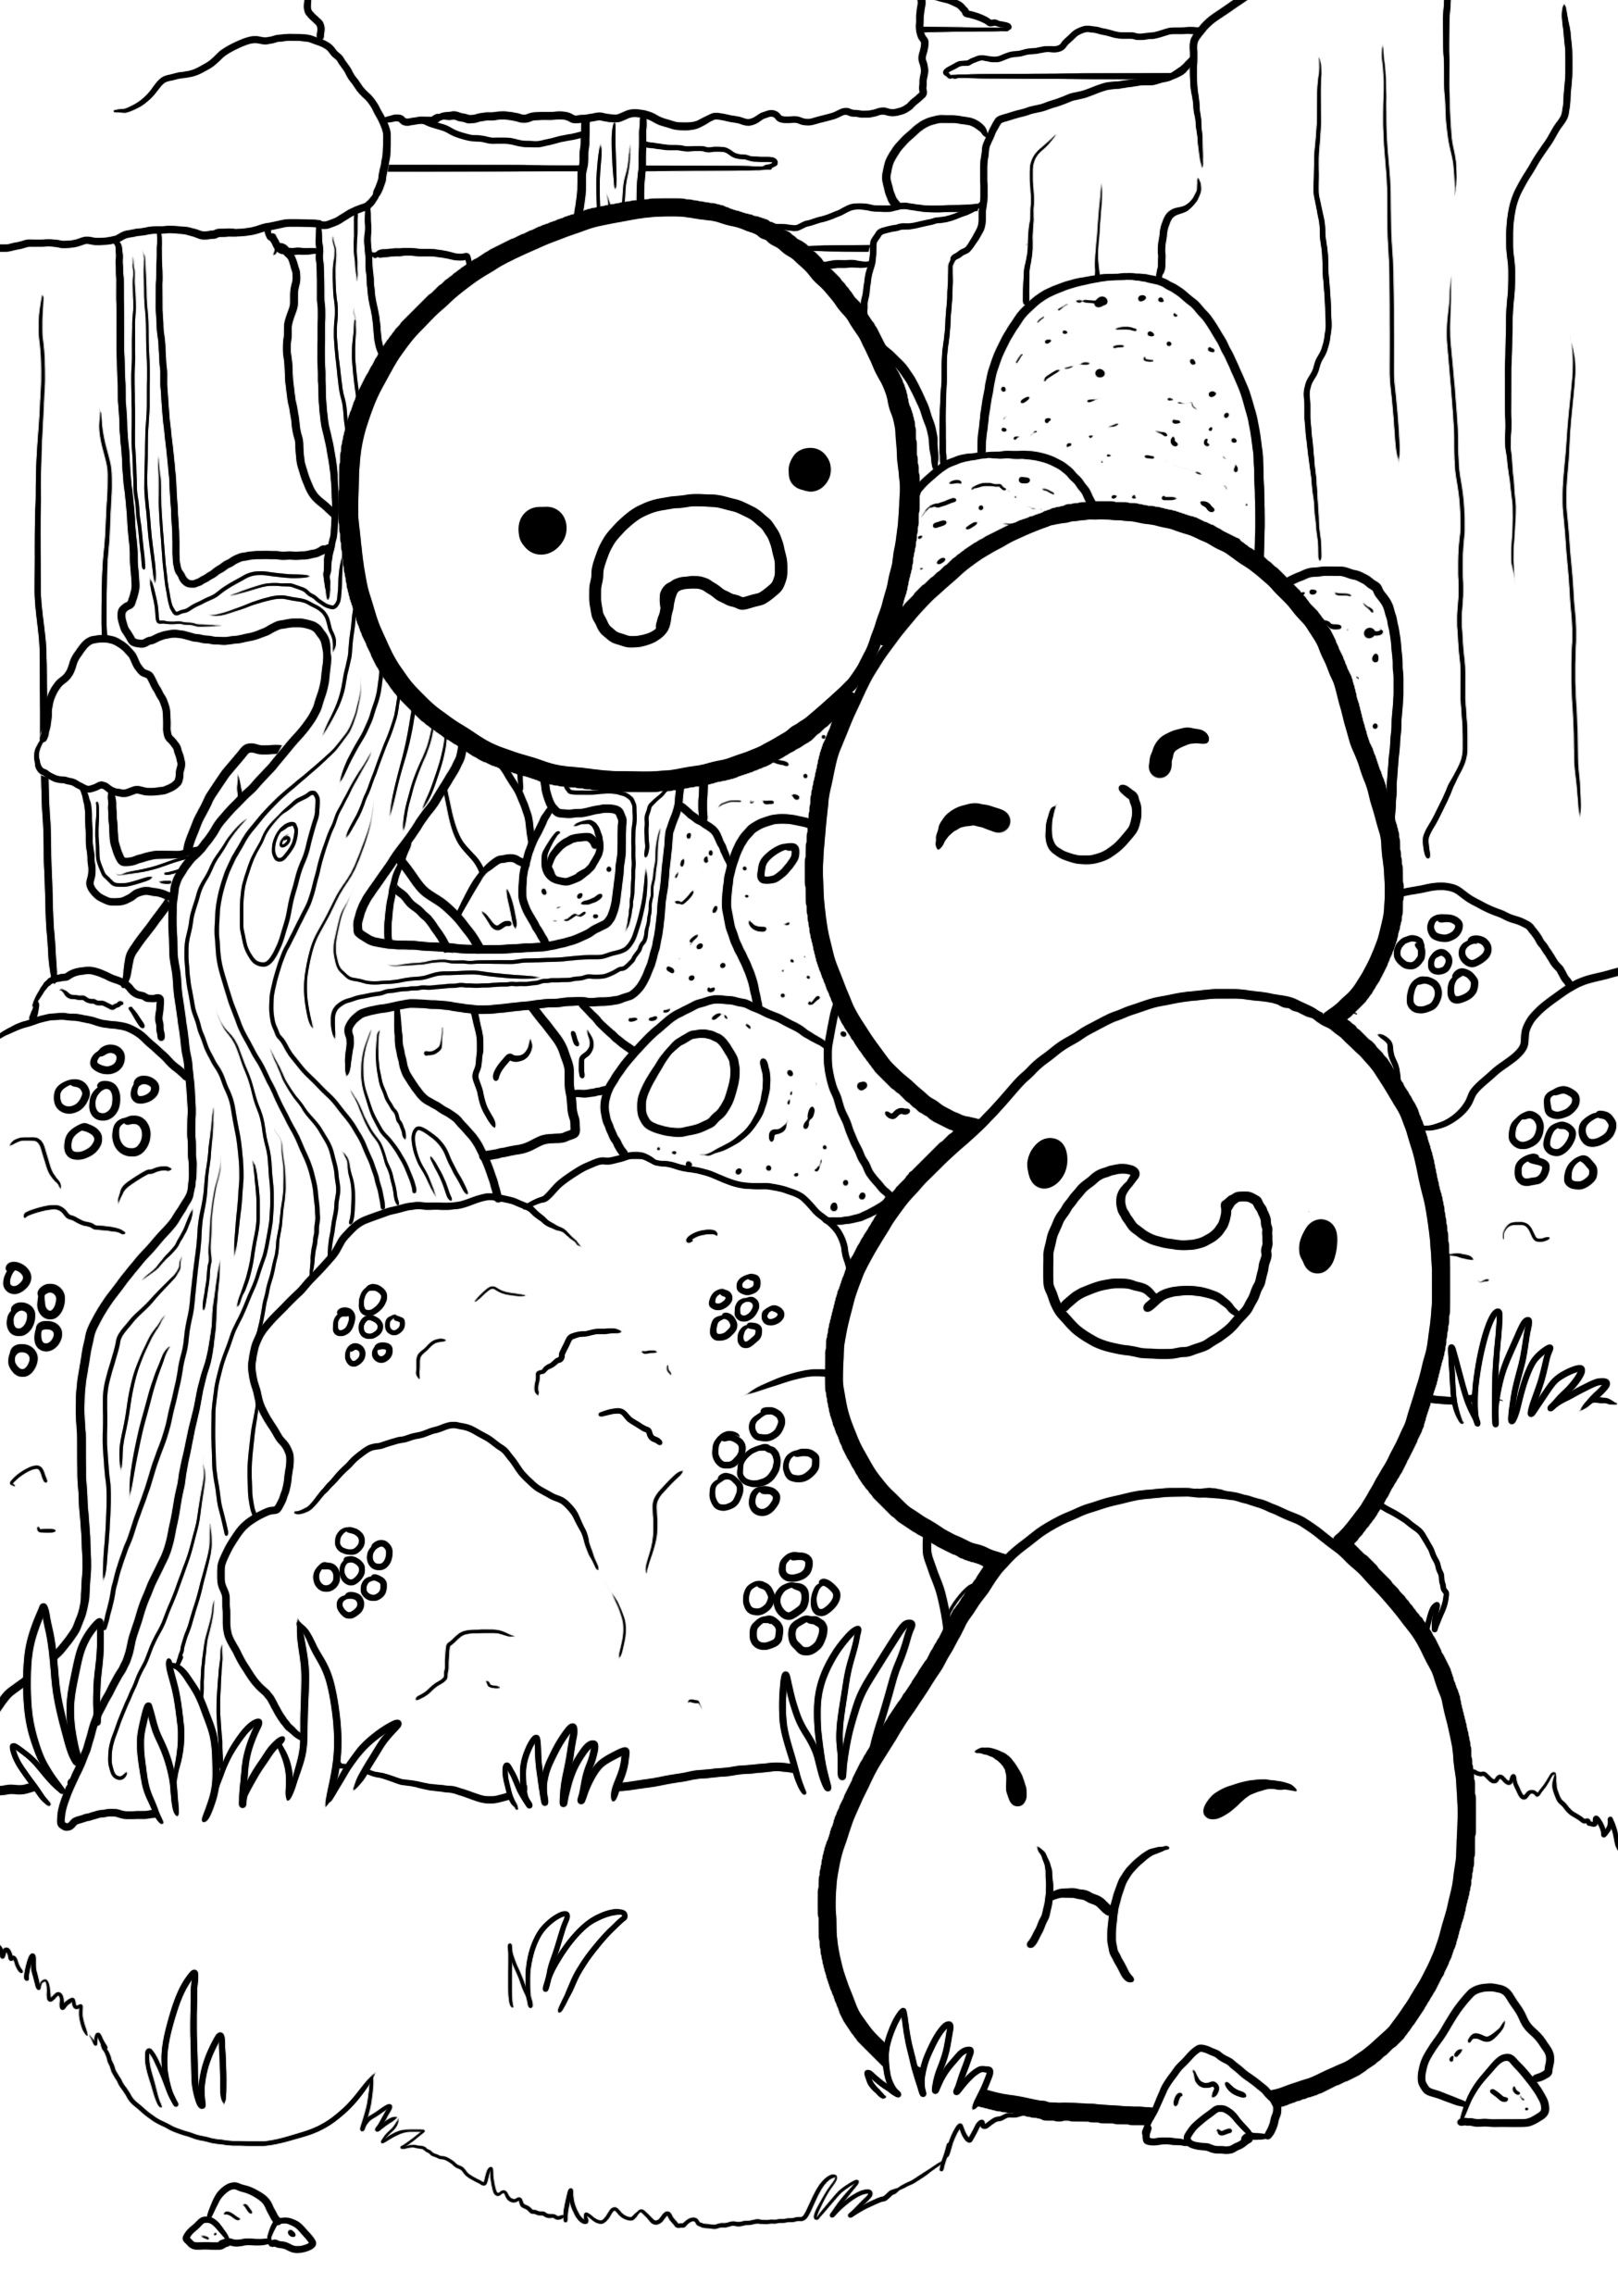 Slime Rancher Colouring Pages Coloring Pages Coloring Books Slime